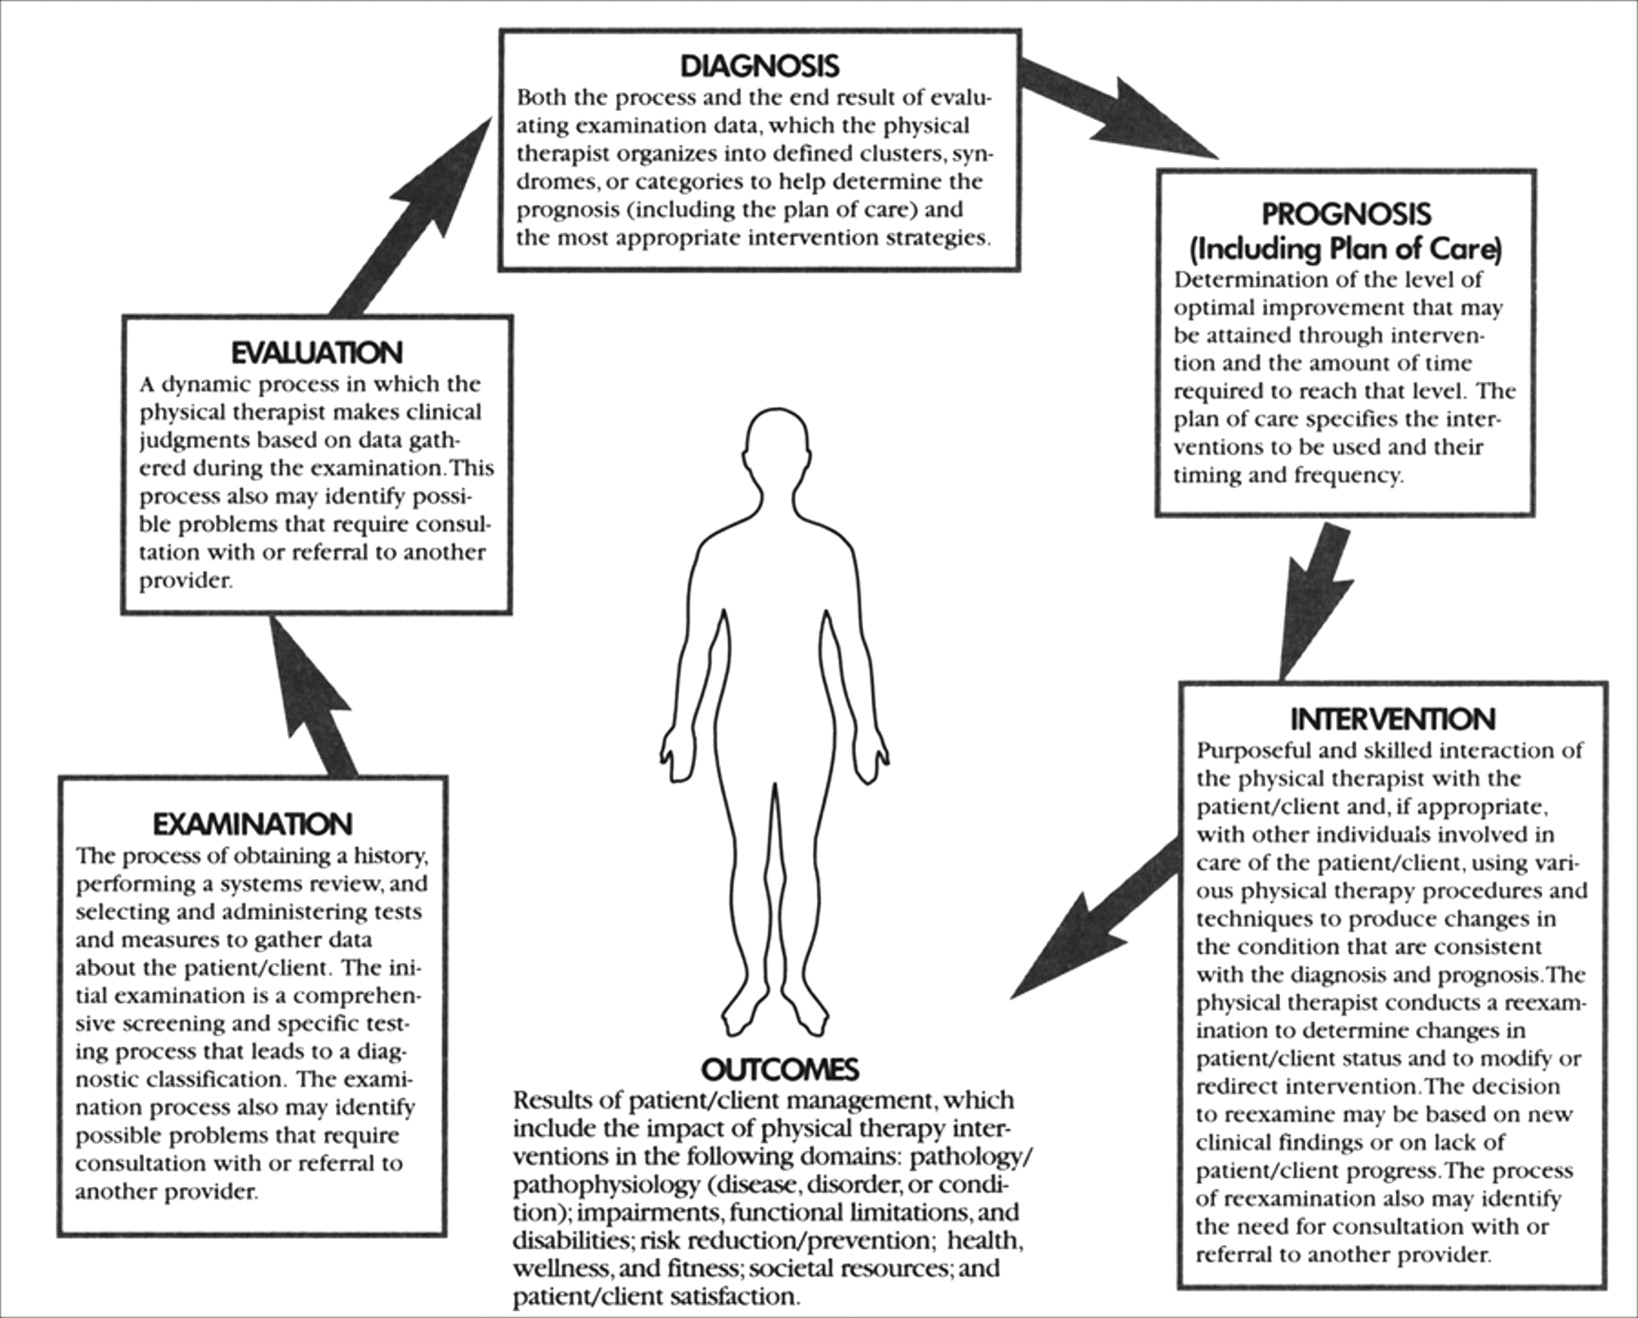 patient-client management model for physical therapy